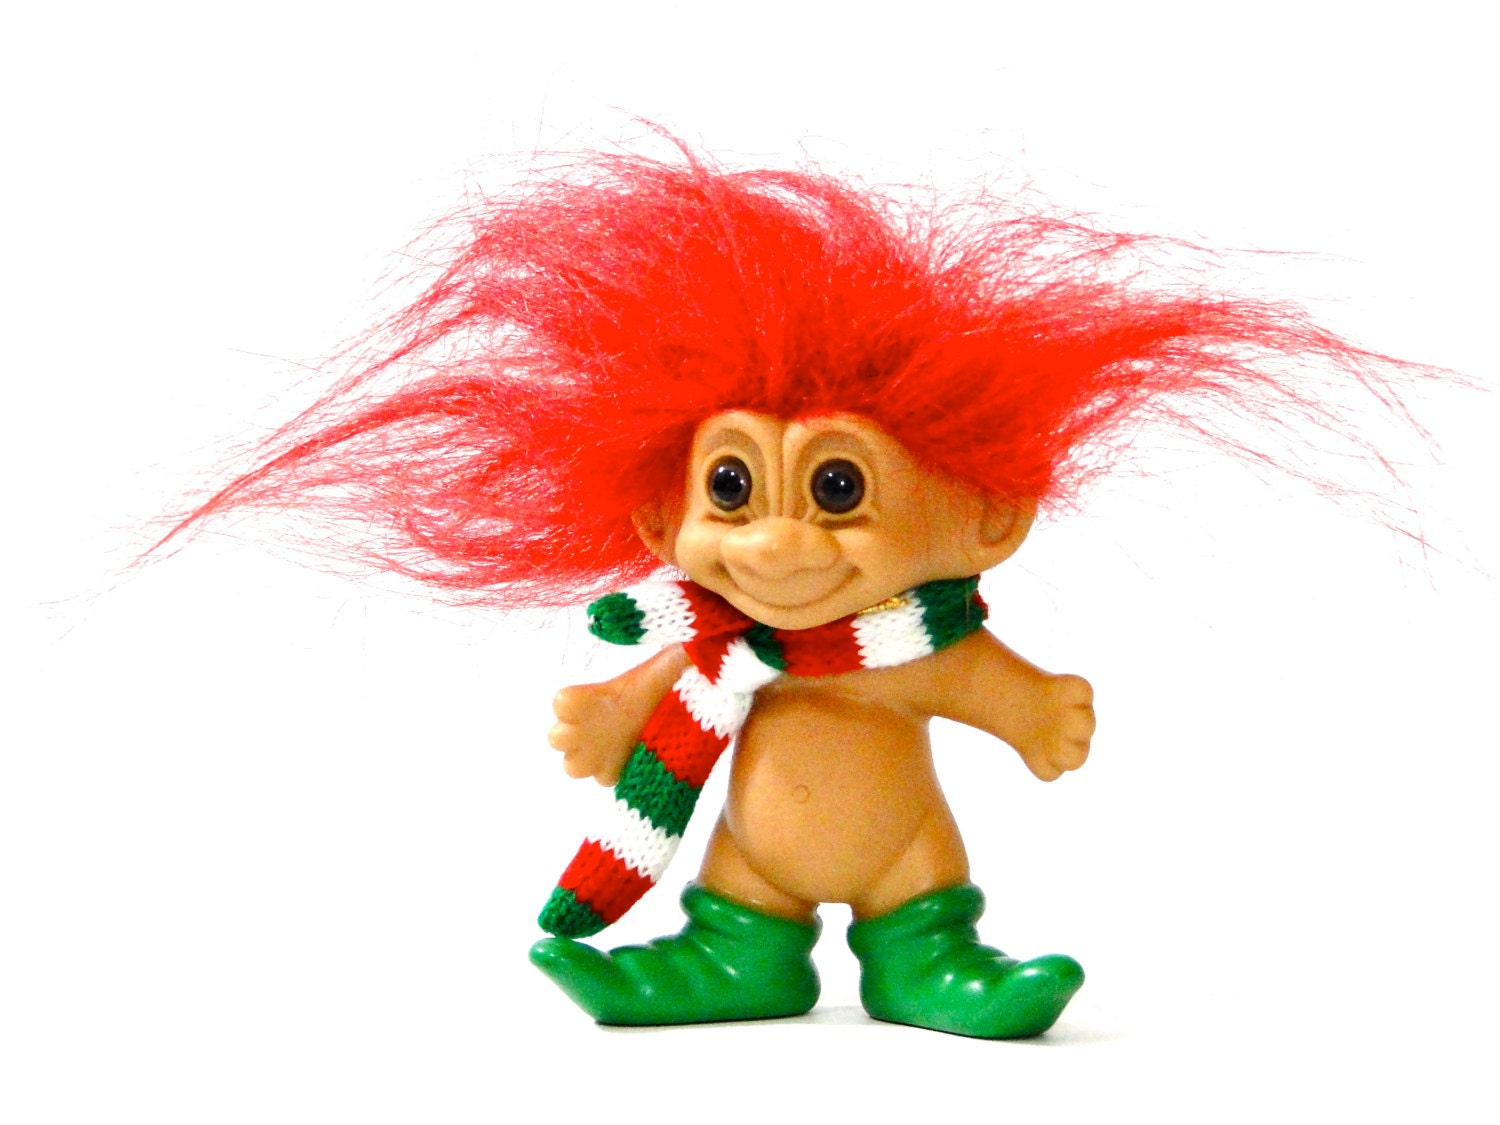 Russ Troll Doll Christmas Dude Red Hair Scarf And Green